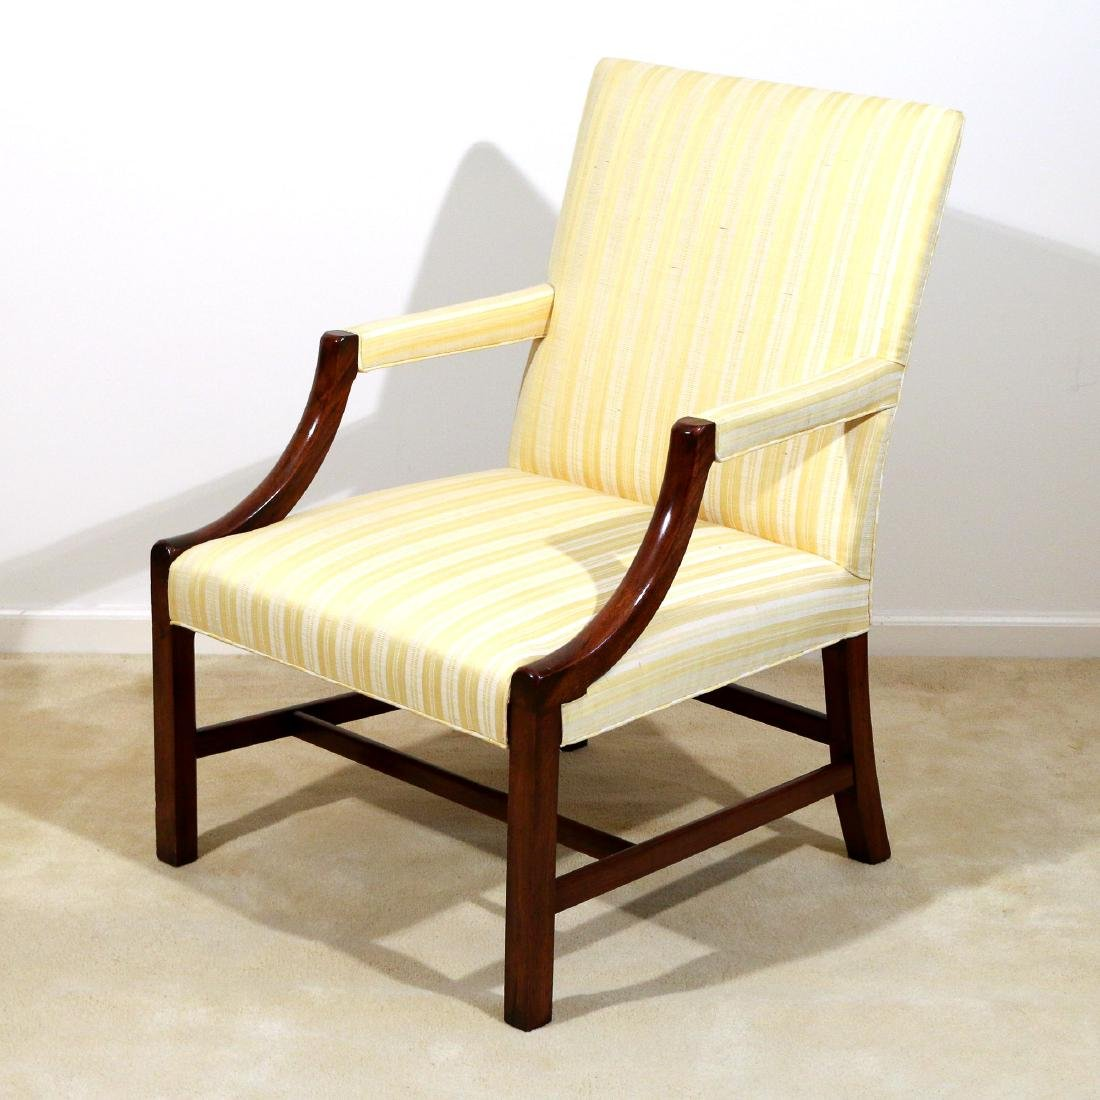 ANTIQUE MAHOGANY LOLLING CHAIR